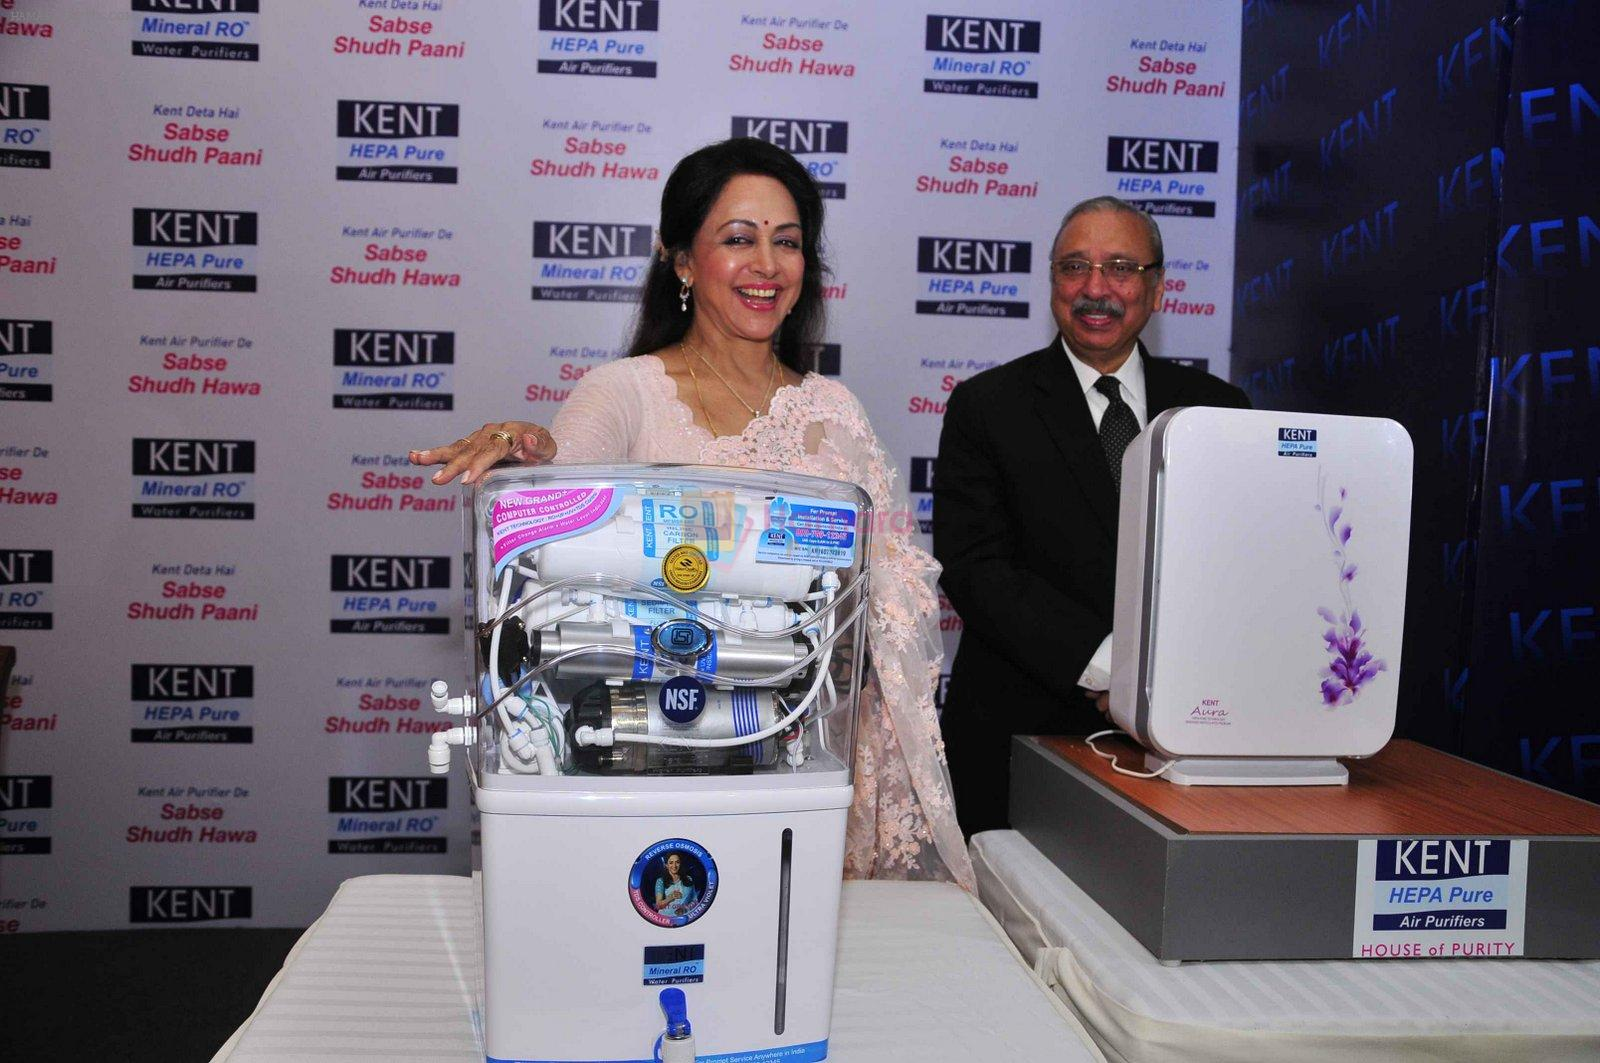 Hema Malini in Delhi for Kent promotions on 4th Oct 2016